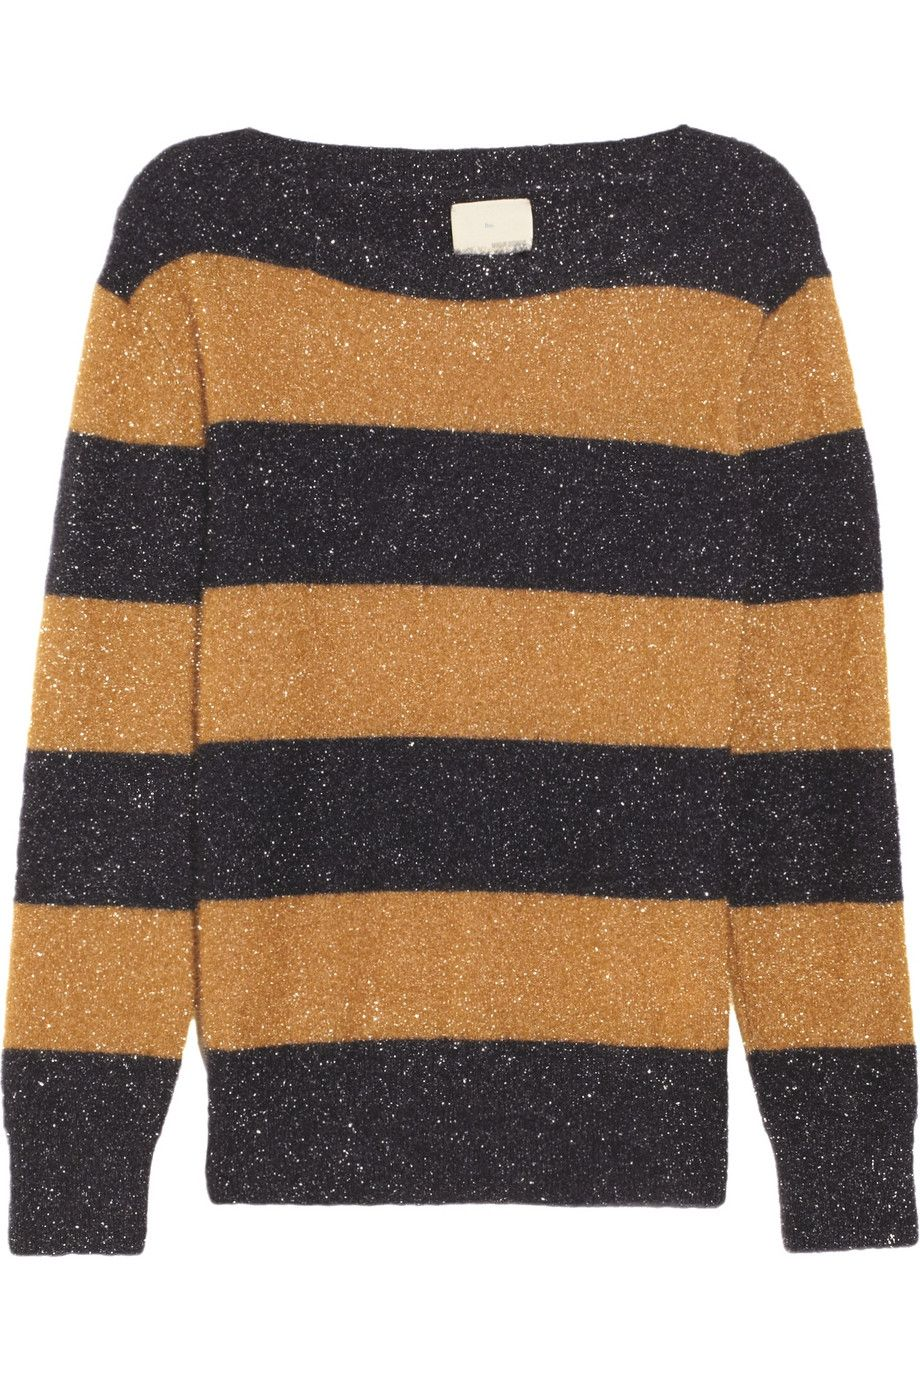 Tinsel-textured striped sweater | Too bad I'm broke... | Pinterest ...